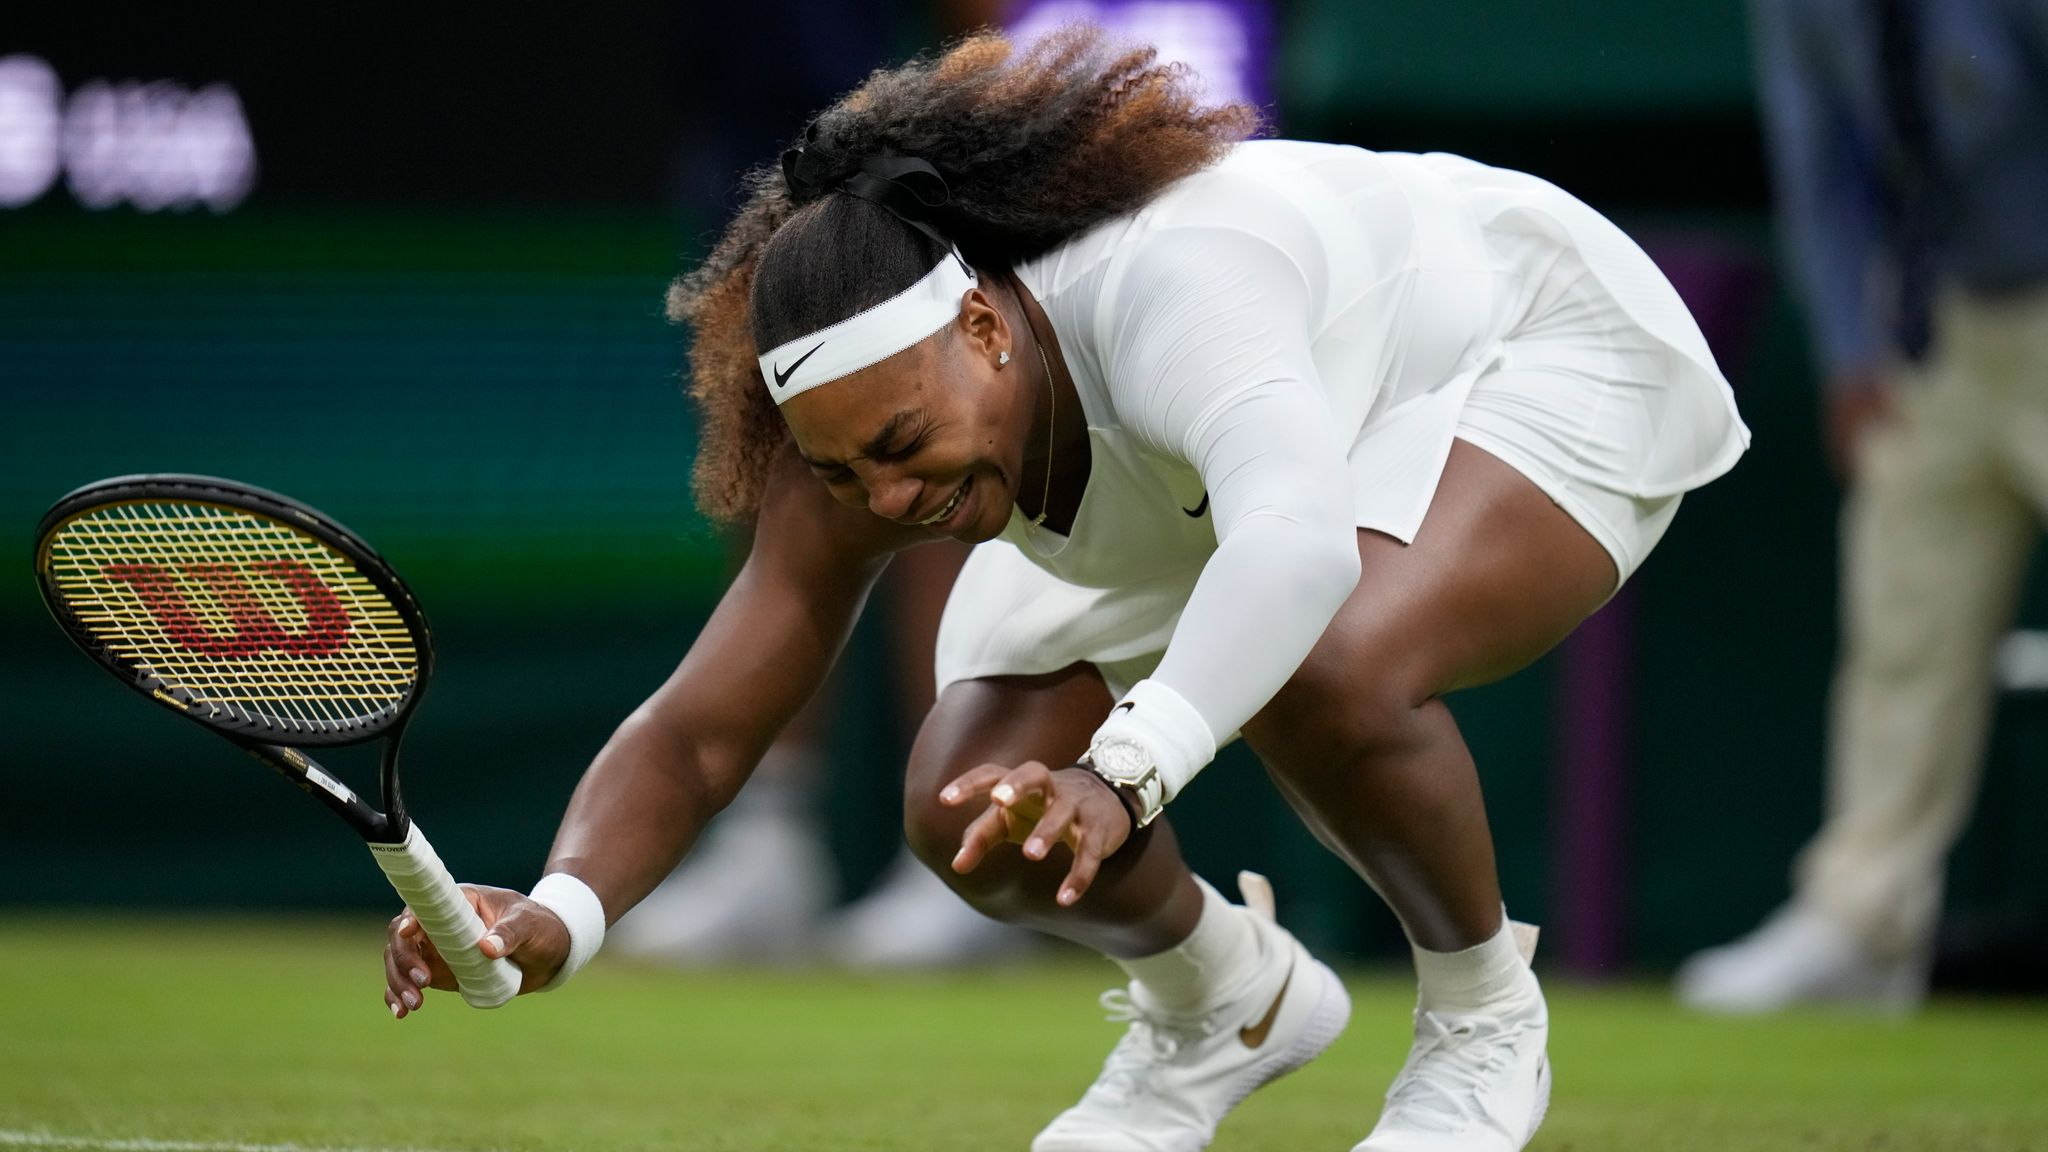 Wimbledon 2021: Serena Williams out after suffering ankle injury during  first-round match   Tennis News   Sky Sports